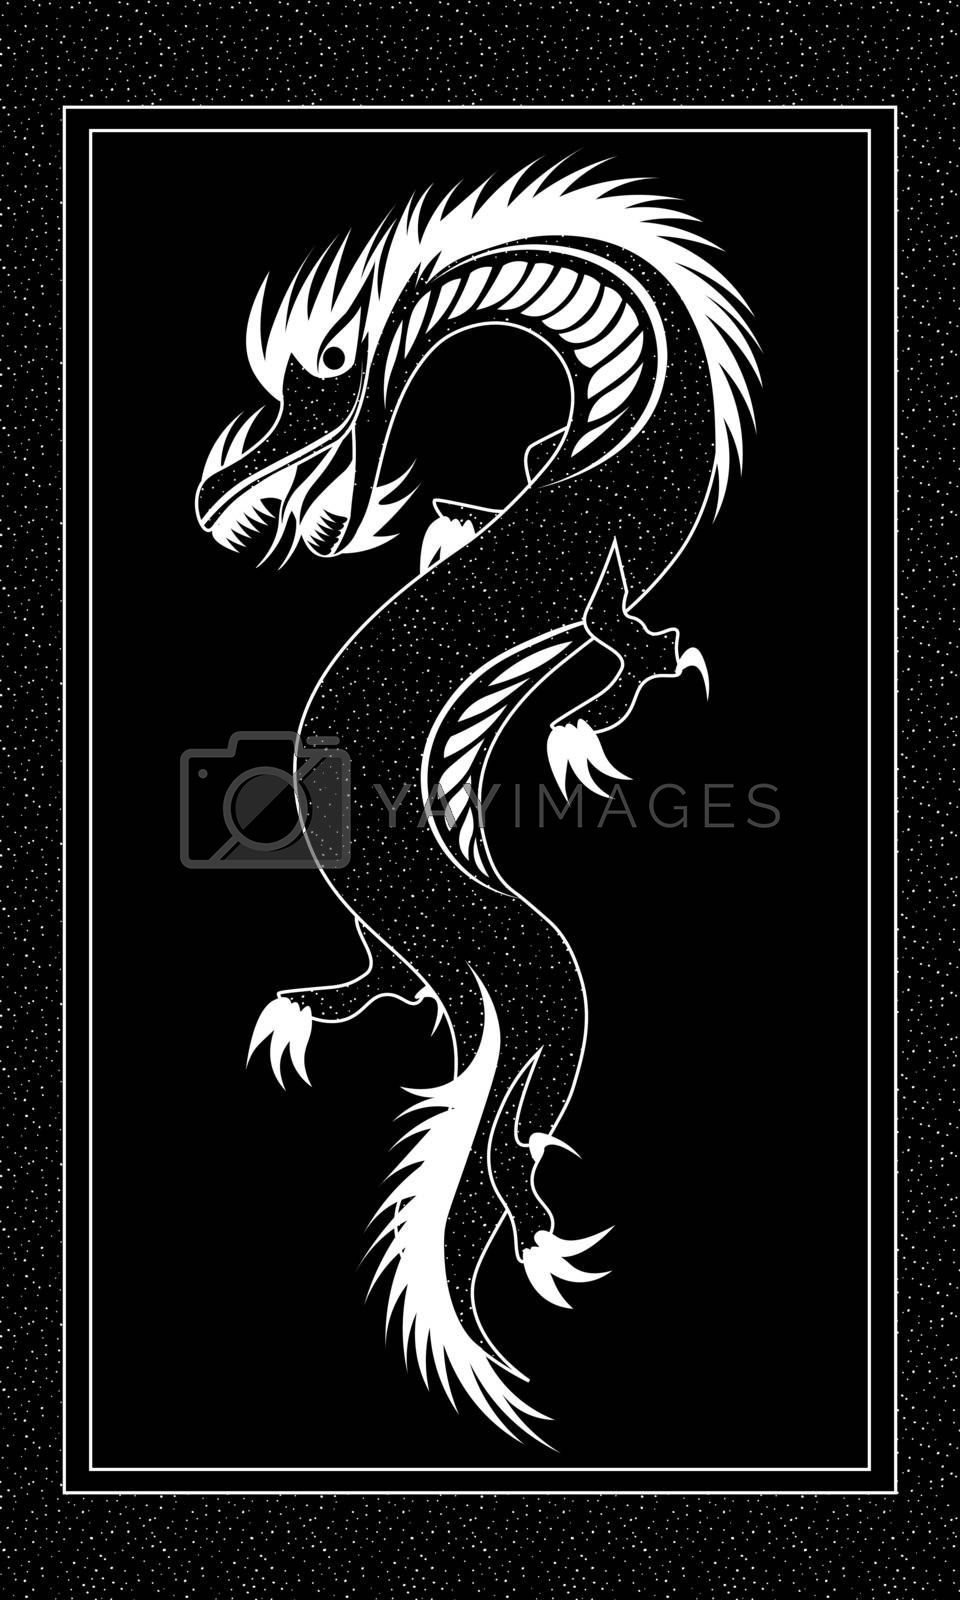 dark illustration with black dragon by paranoido